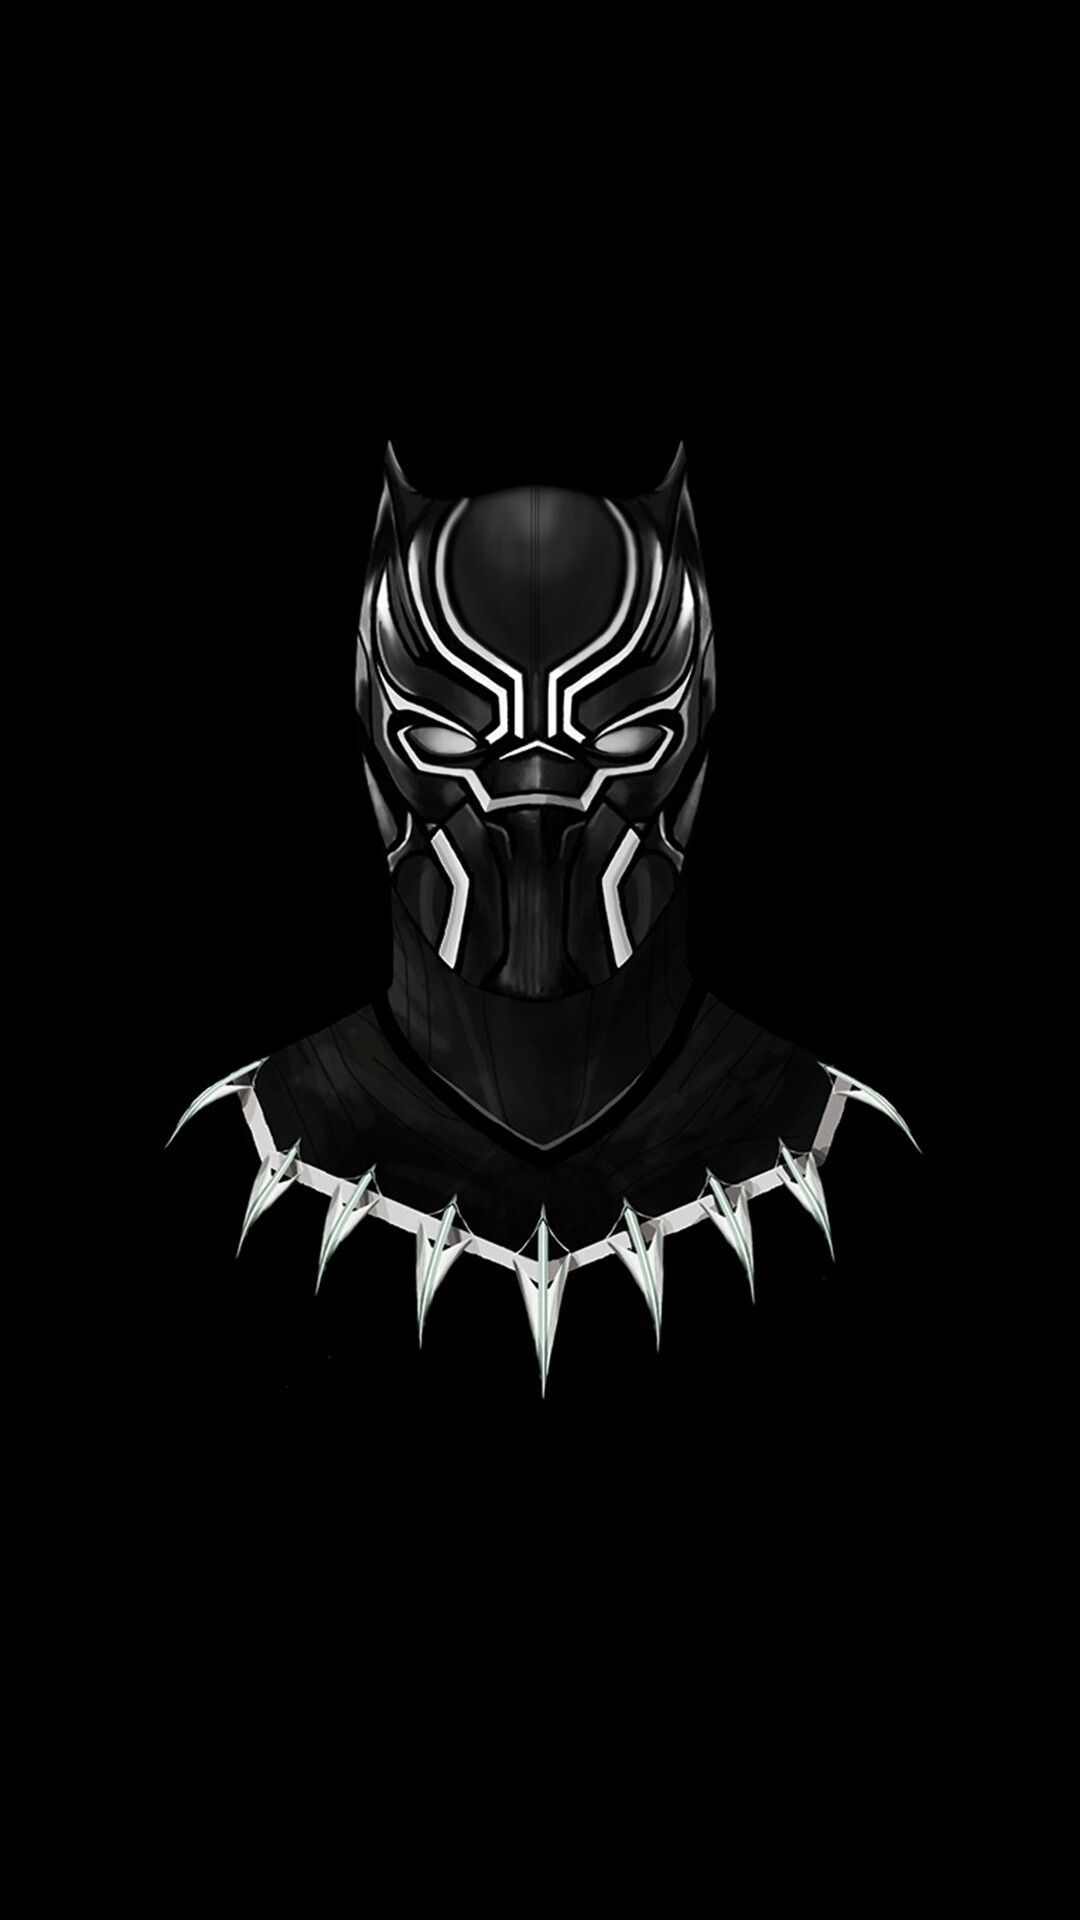 Black panther marvel image by Vlada Stojanovic on Android